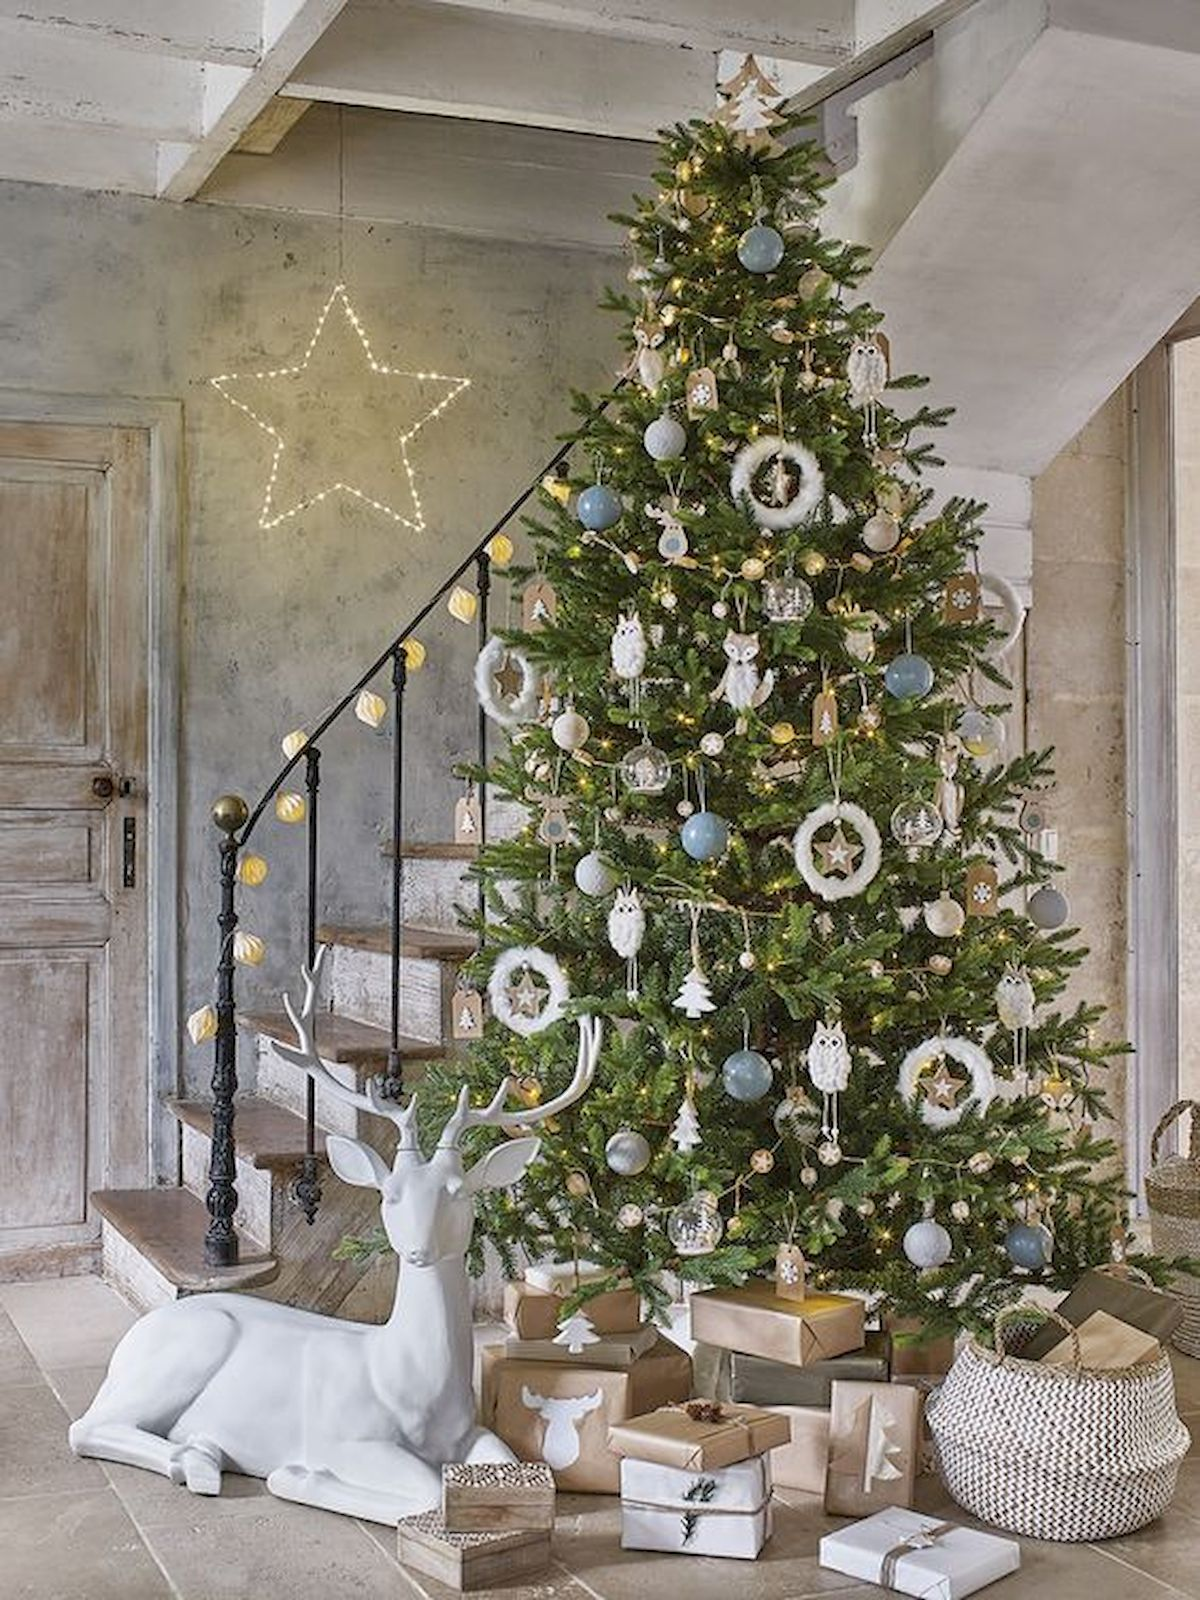 60 Awesome Christmas Tree Decorations Ideas in 2020